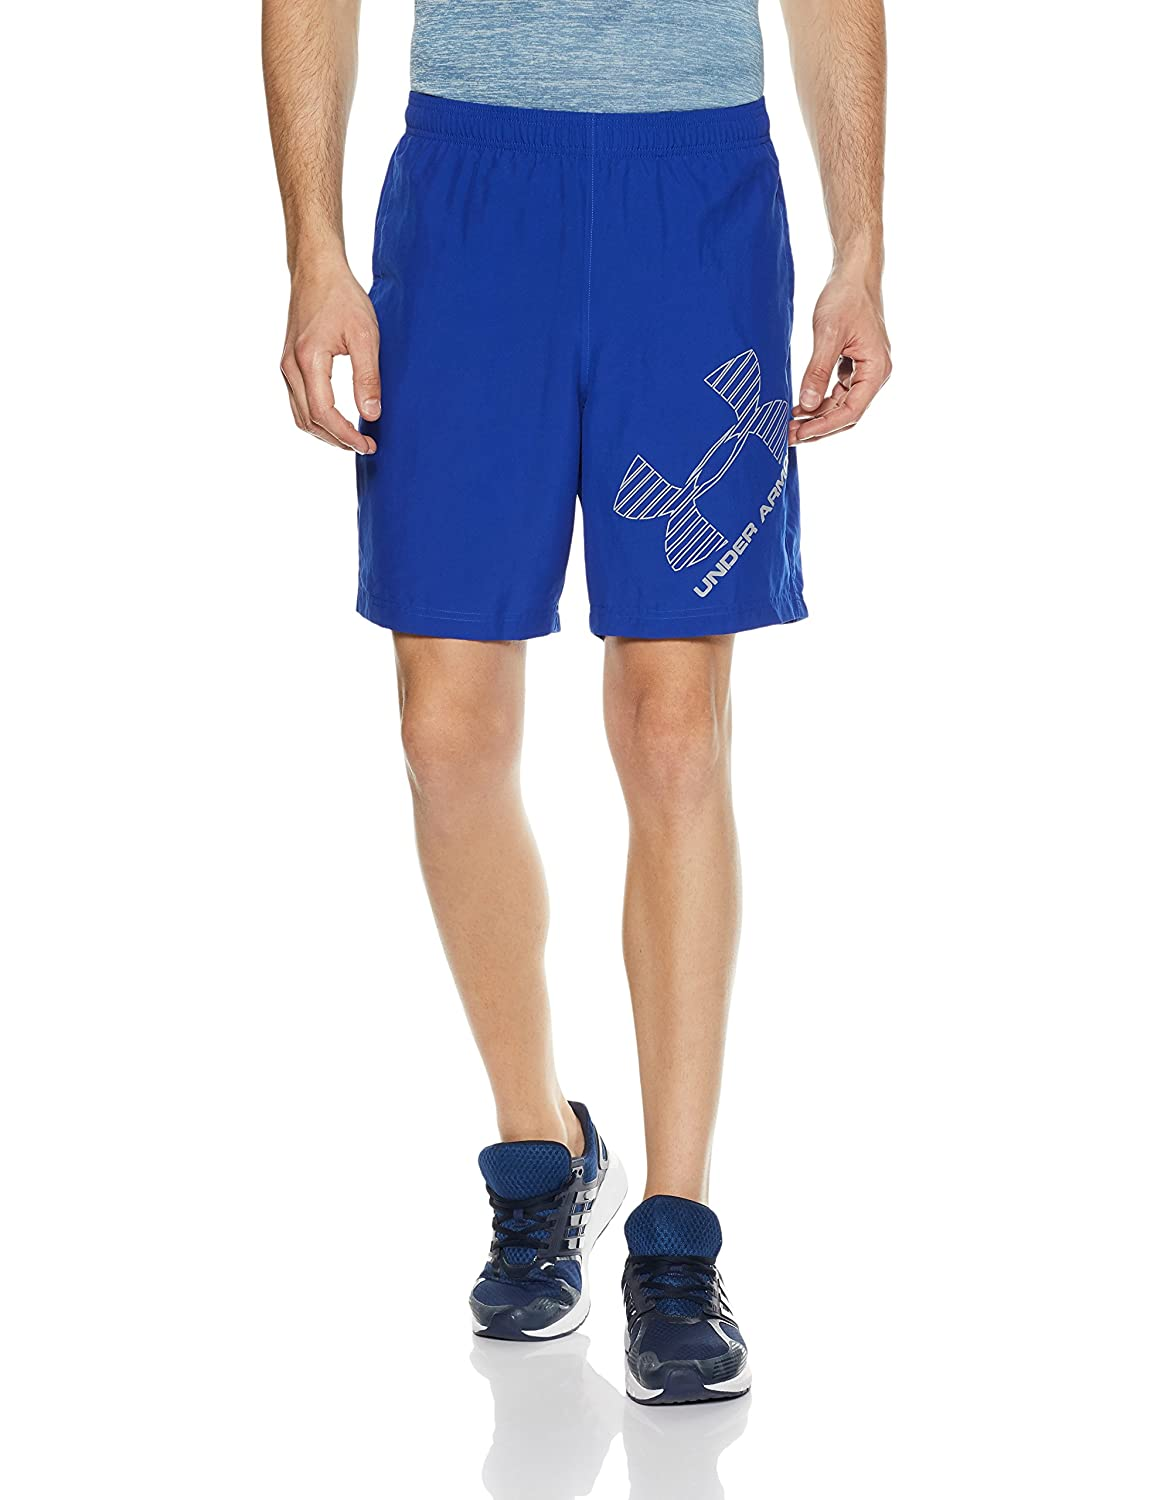 55dbc1c10a01 Under Armour Men s UA 8 Woven Graphic Fitness Pants   Shorts